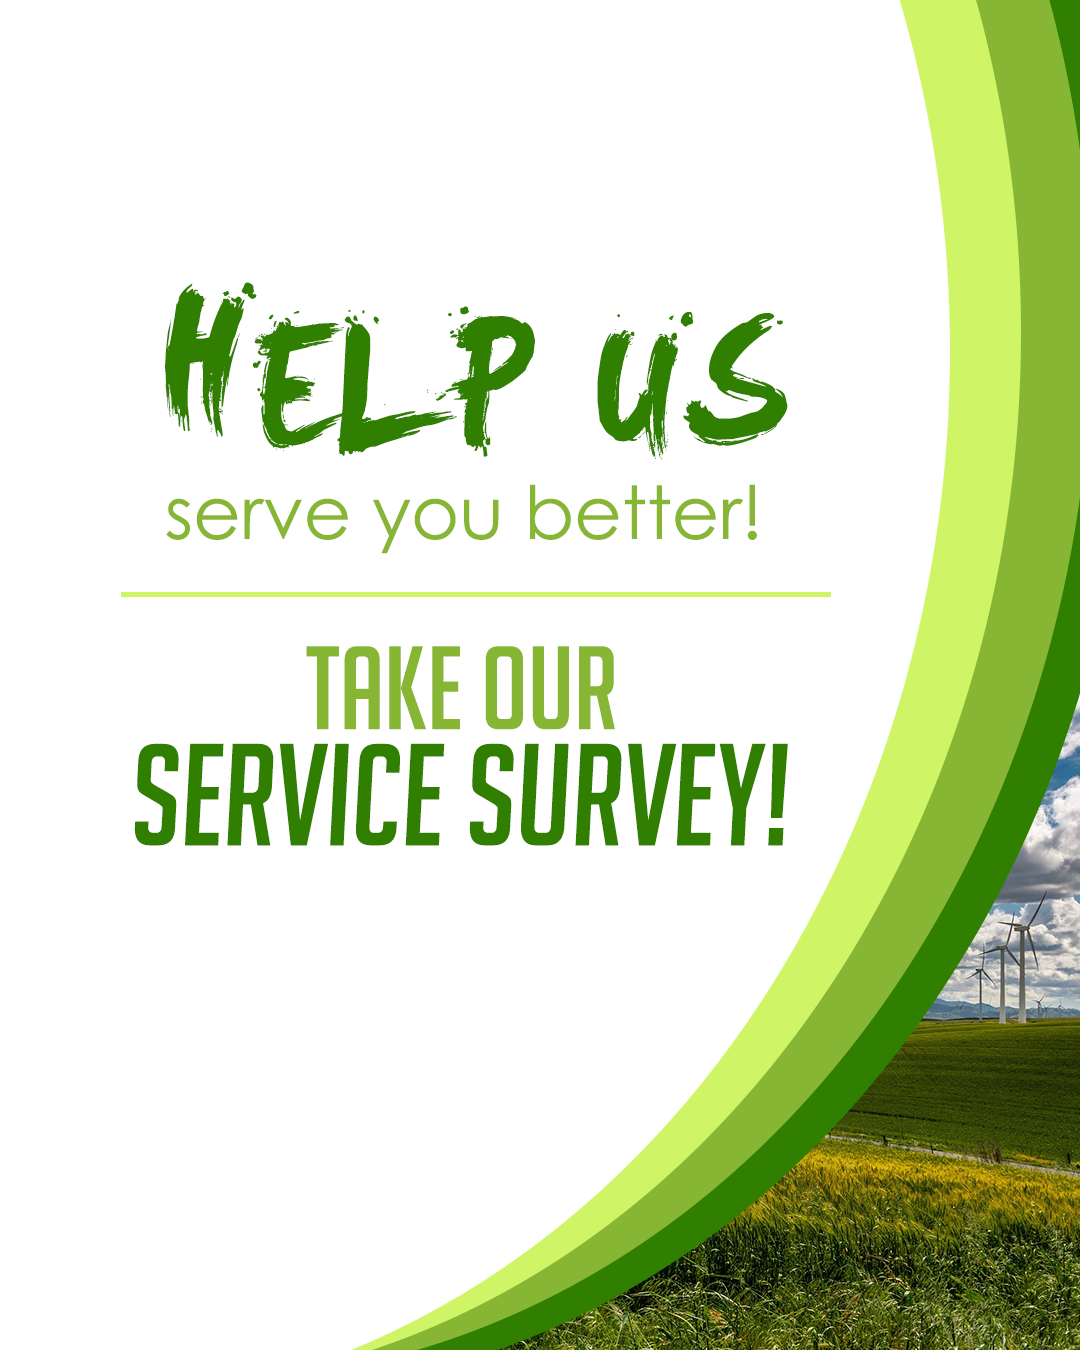 Dream Agritech Service Survey - A series of questions about the current status of labor services at the farm level. Let us know how we can help you!